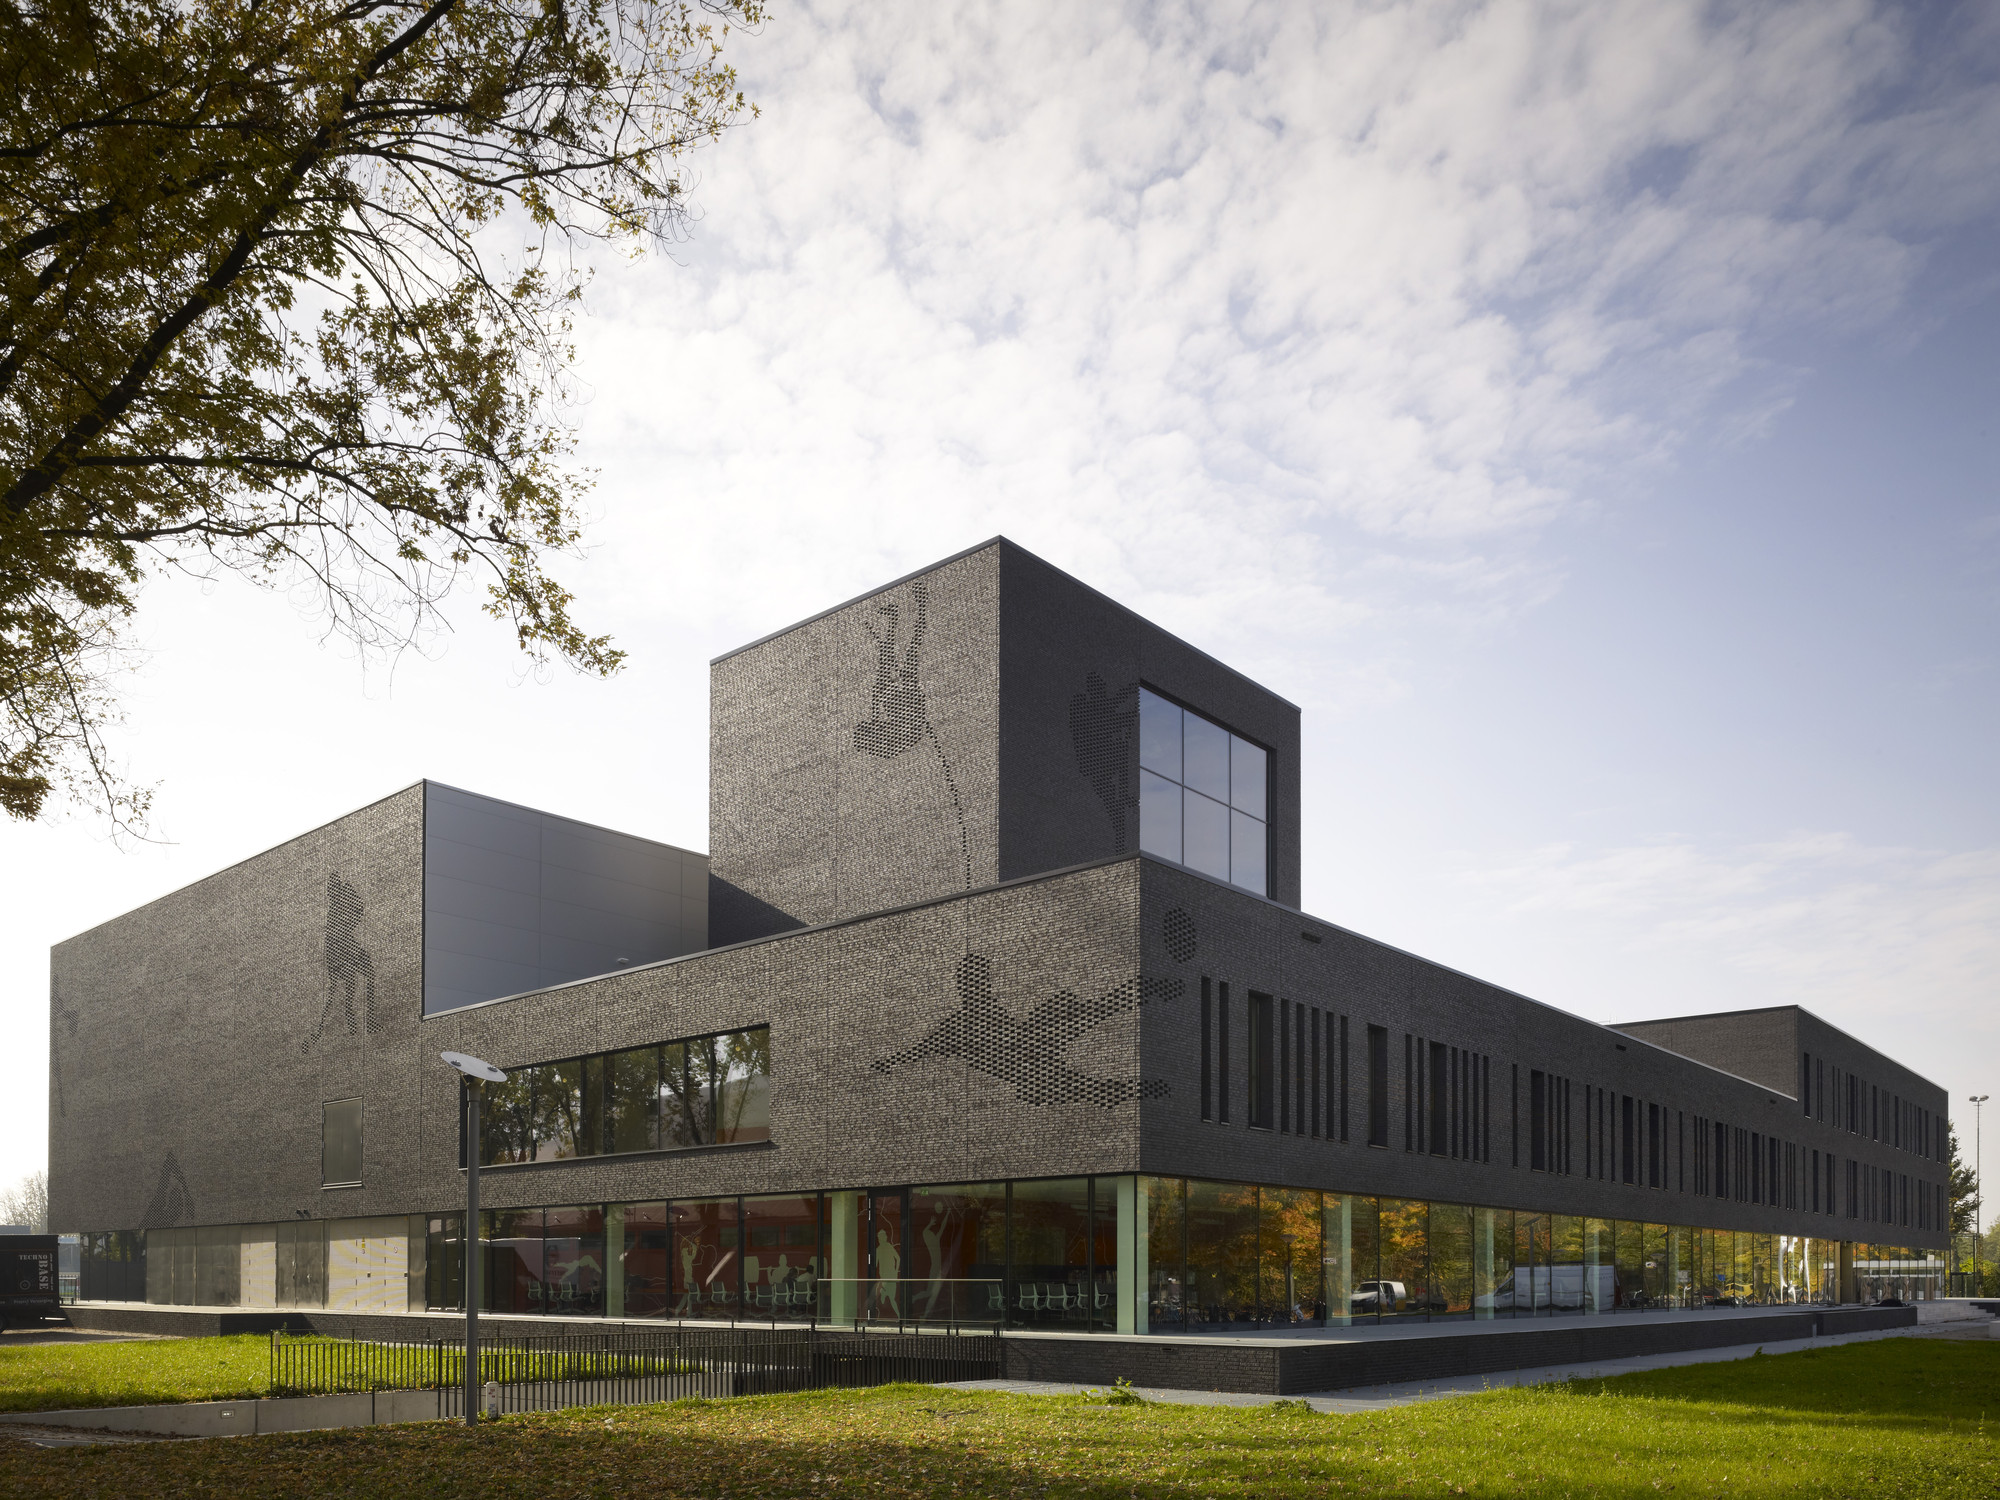 Schools winner: Fontys Sports College, Netherlands by Mecanoo International